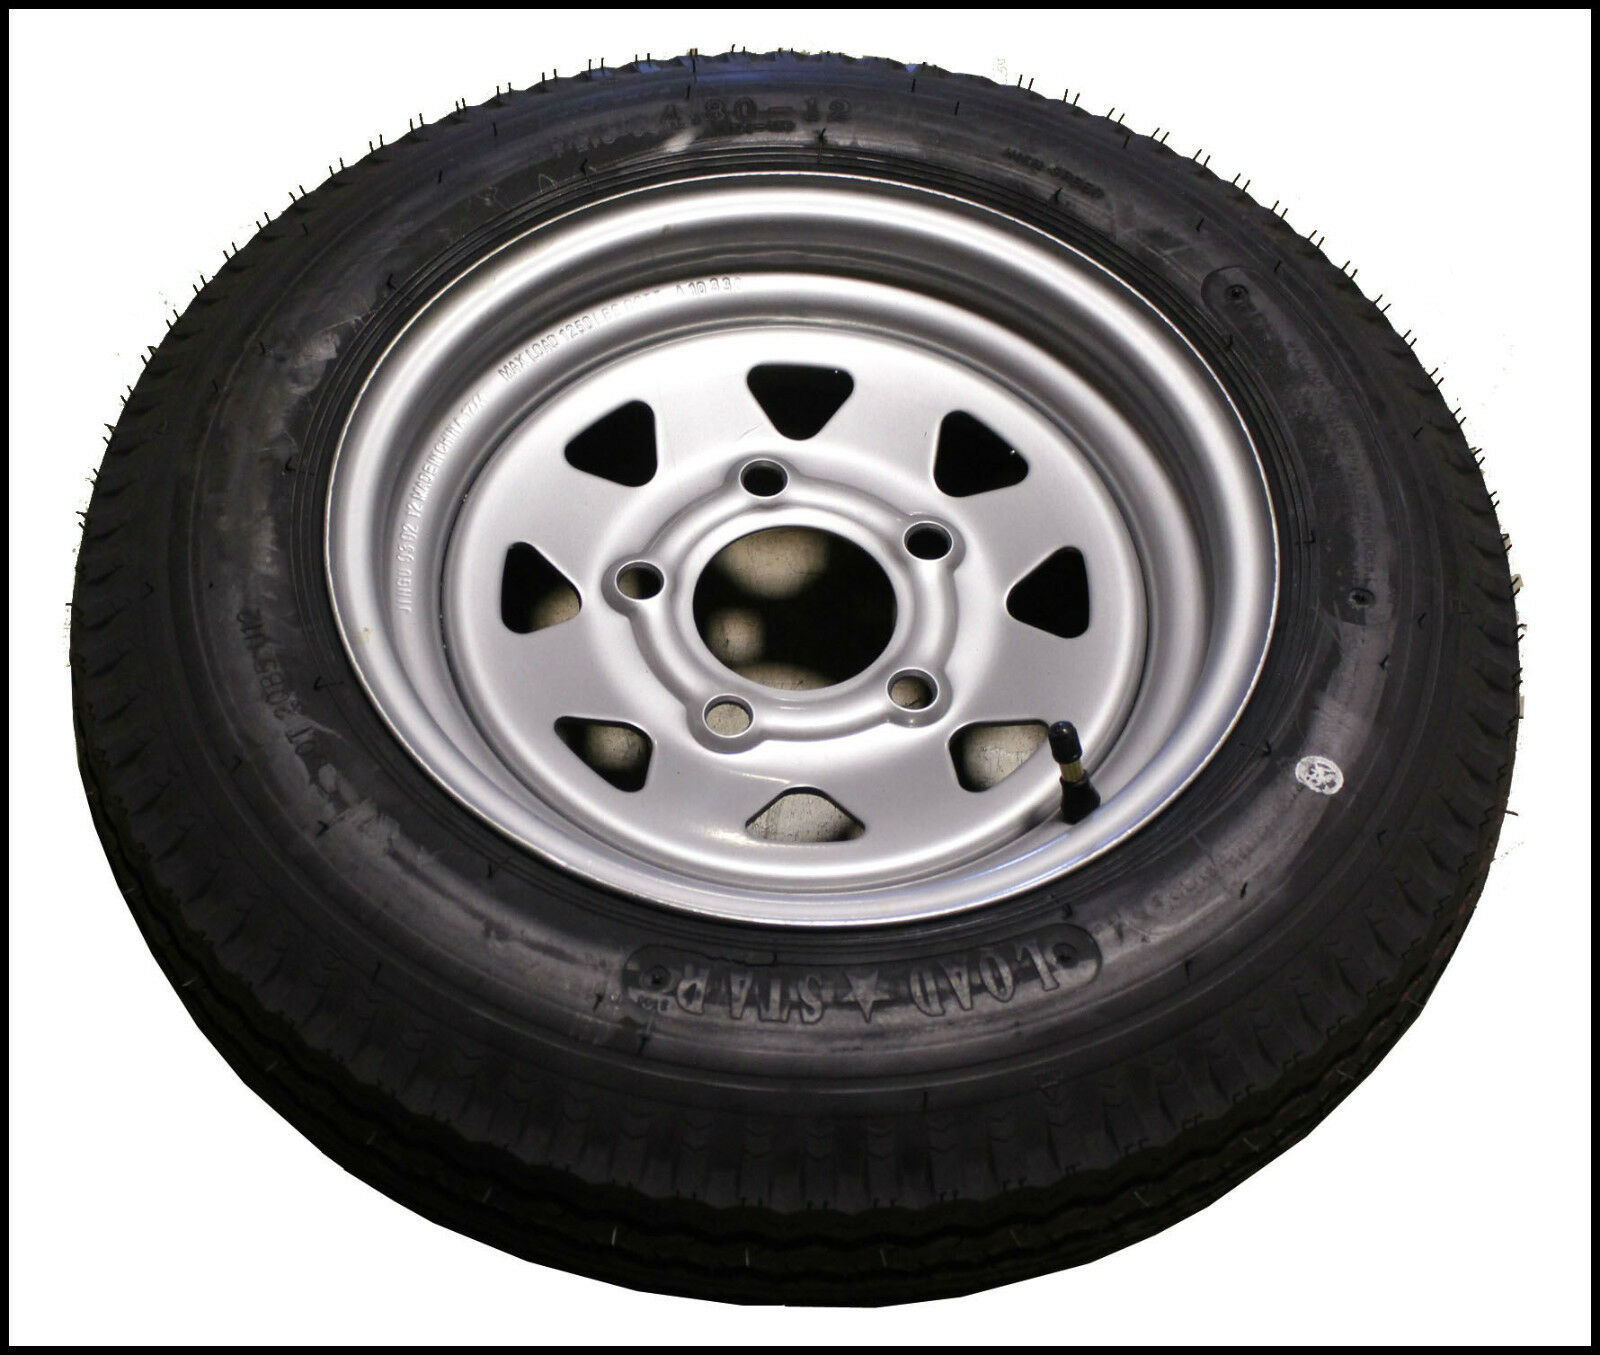 4.8 x 12 Triton 06509 Class C Snowmobile Trailer Tire